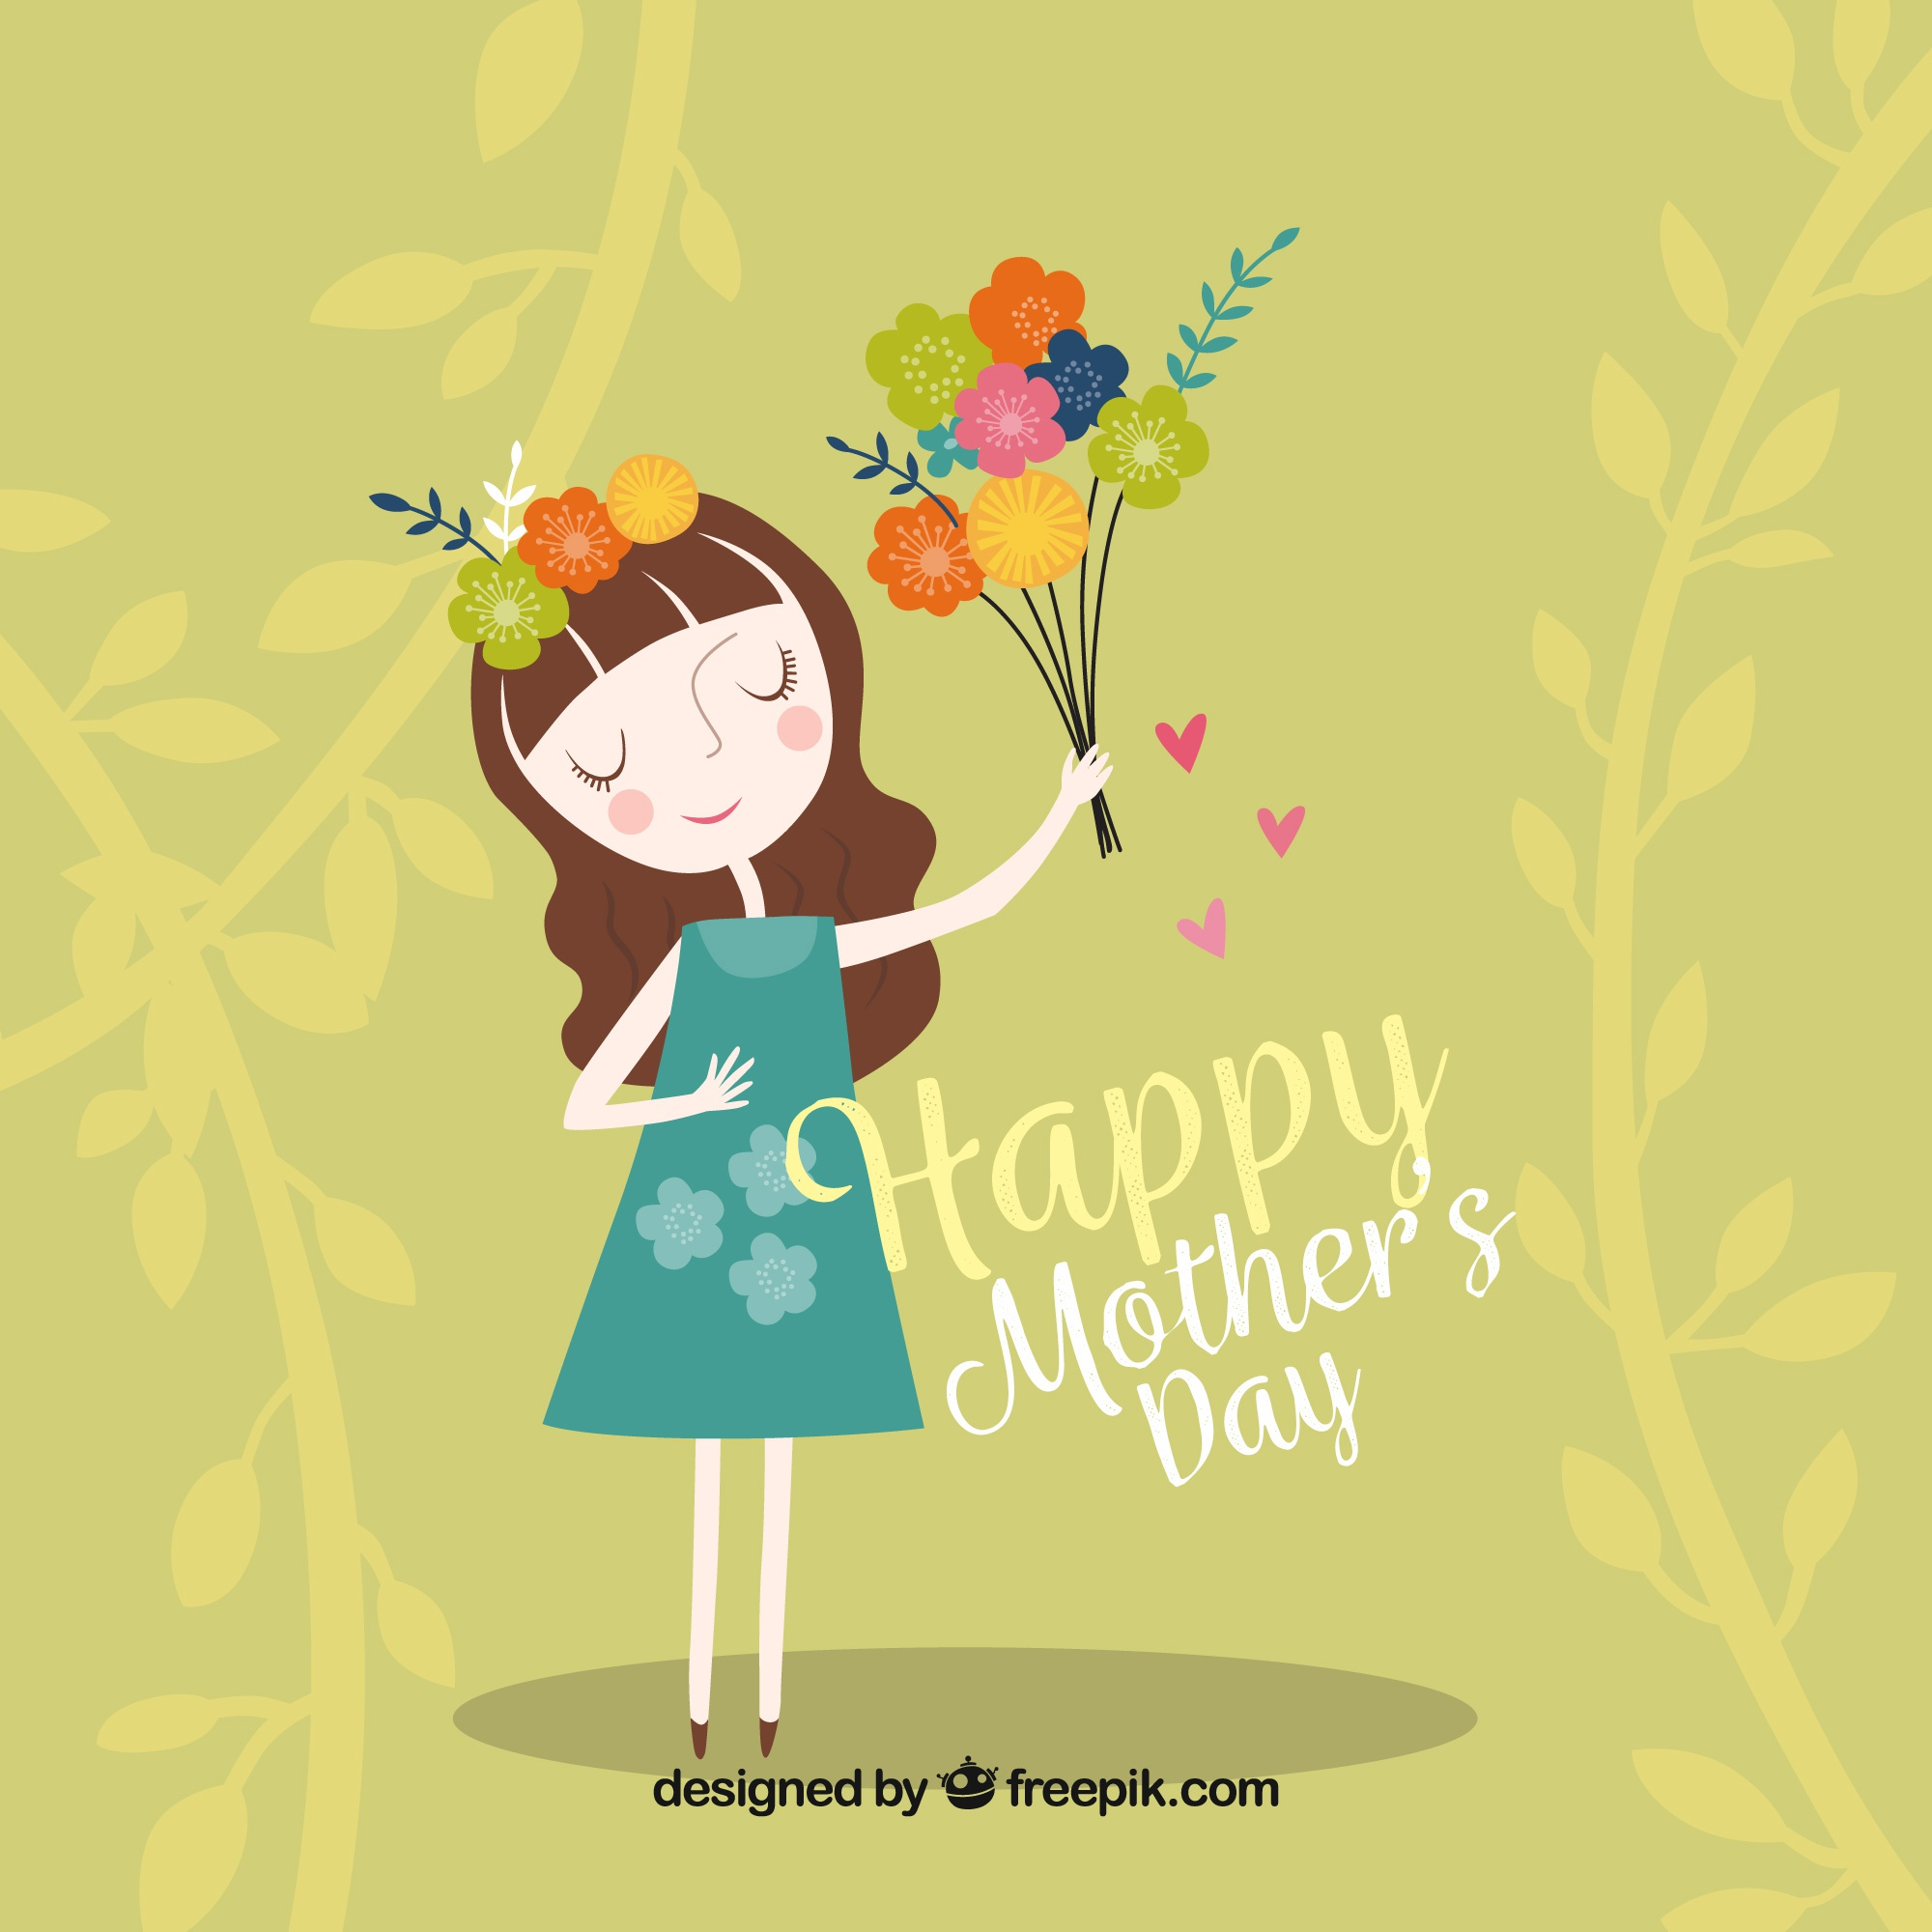 Green background of woman with flowers for mother's day